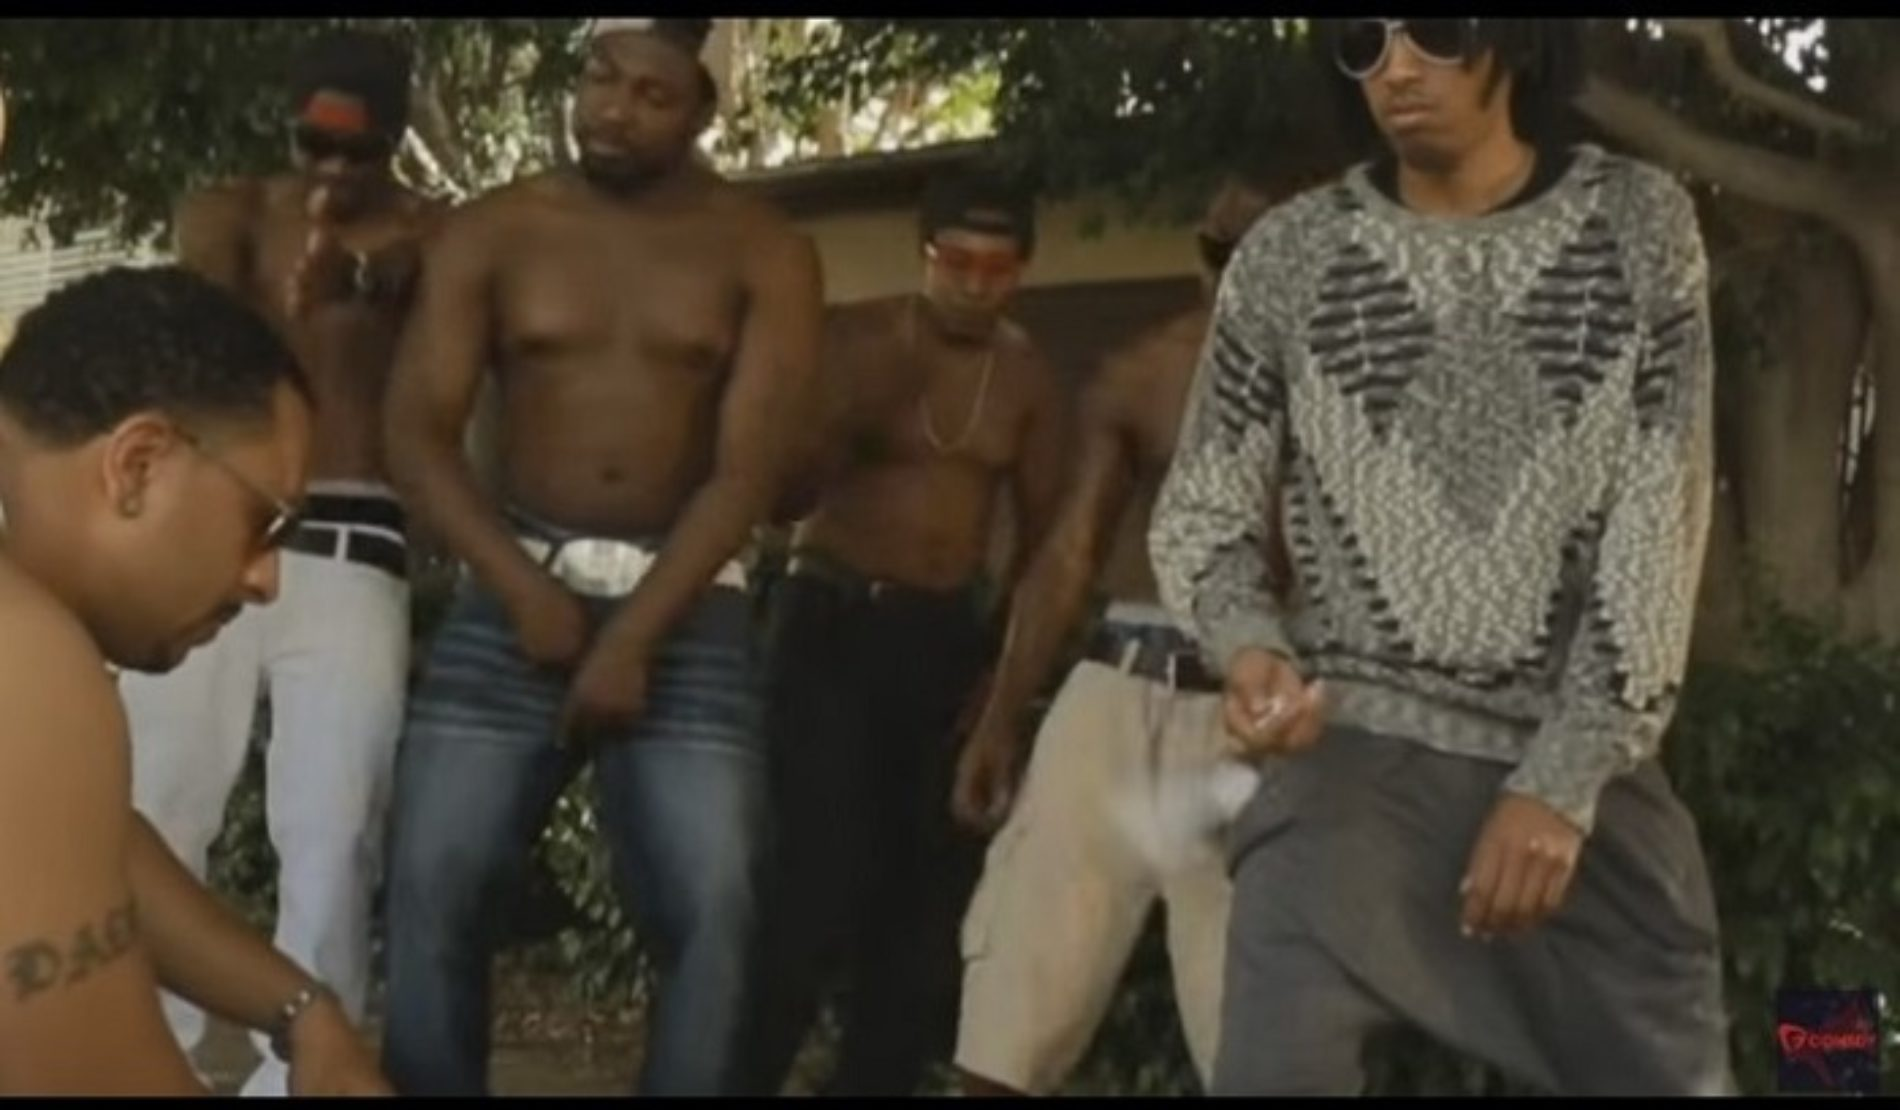 Video: What Happens When Straight Guys Are Tricked Into A Gay Rap Video